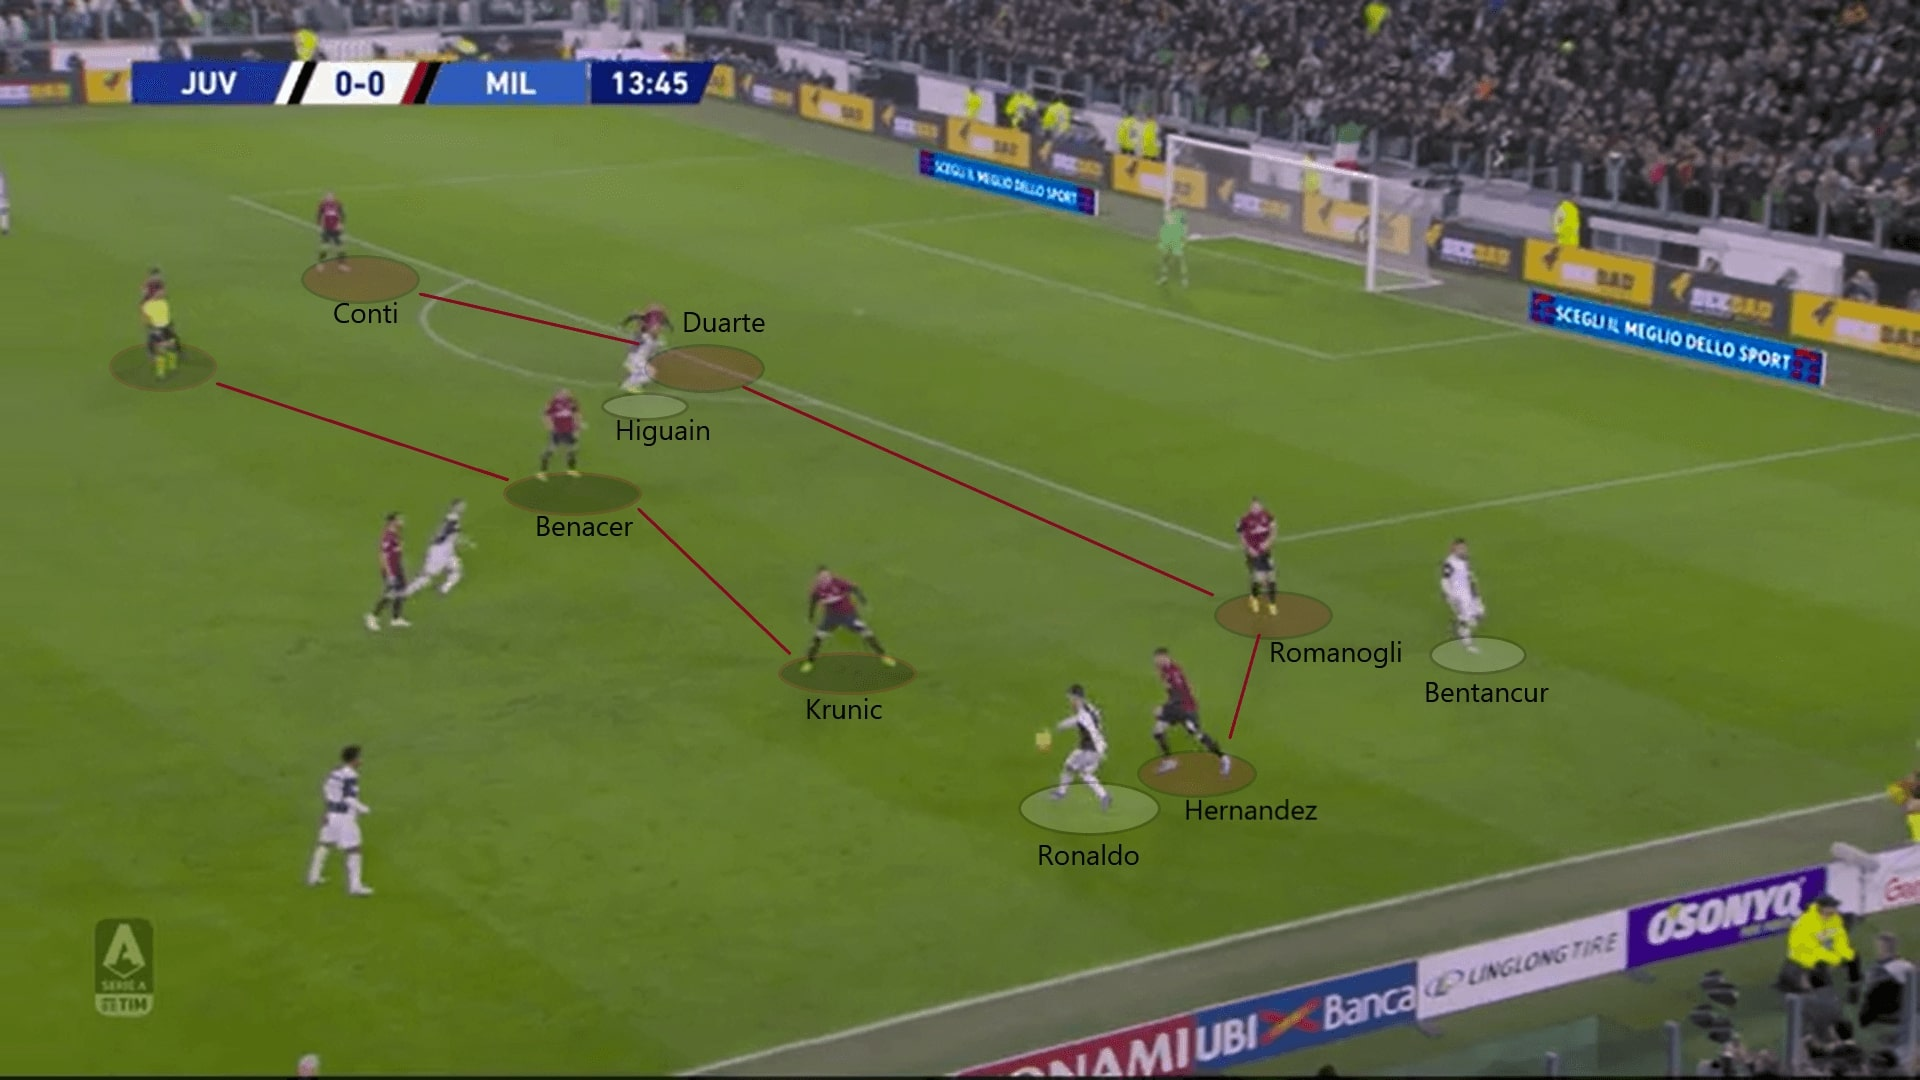 Serie A 2019/20: Juventus vs Milan - tactical analysis tactics